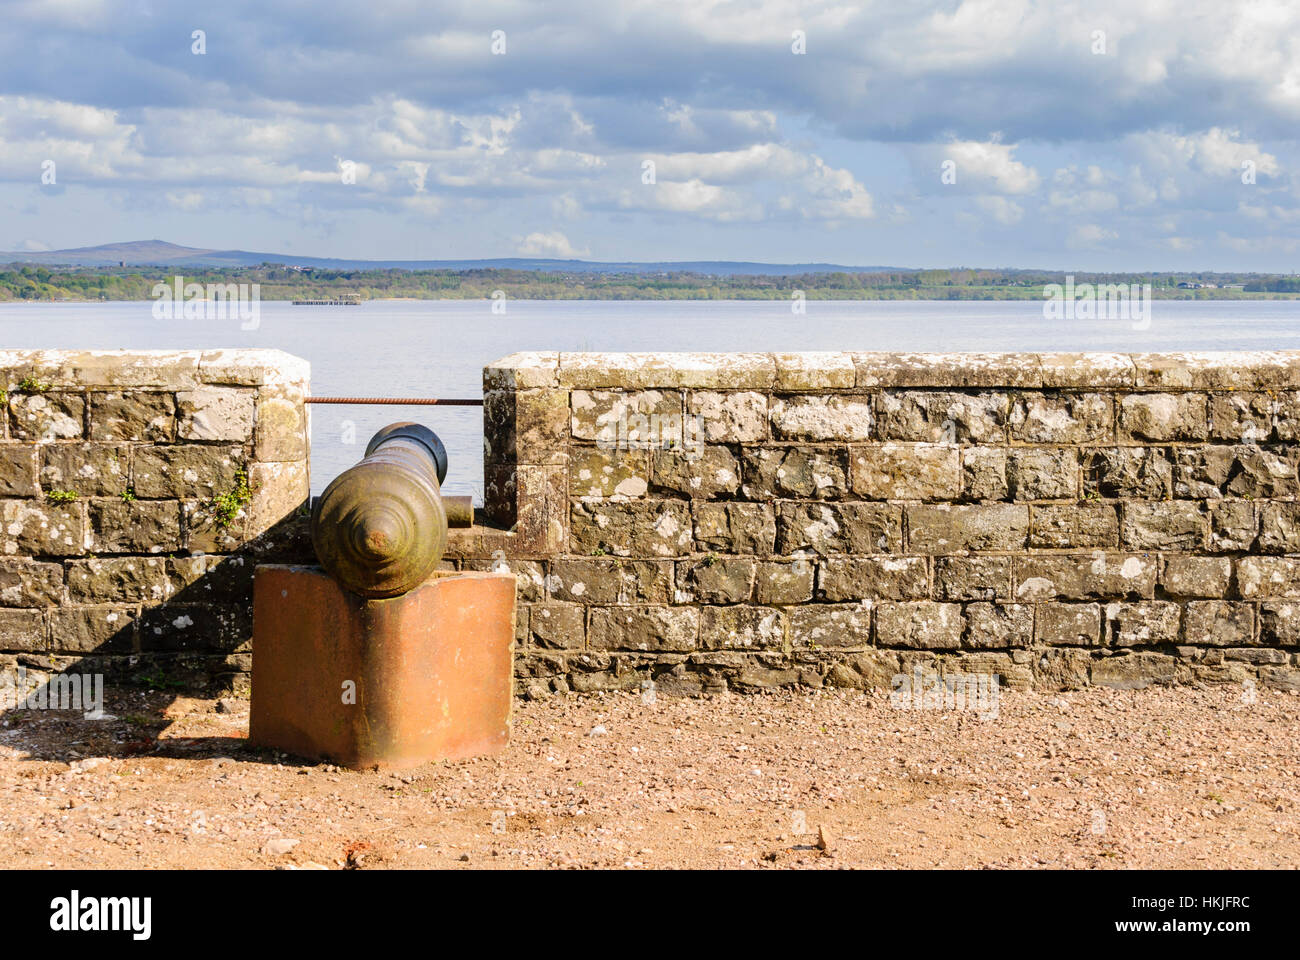 Cannon on a castle wall overlooking a narrow sea. - Stock Image